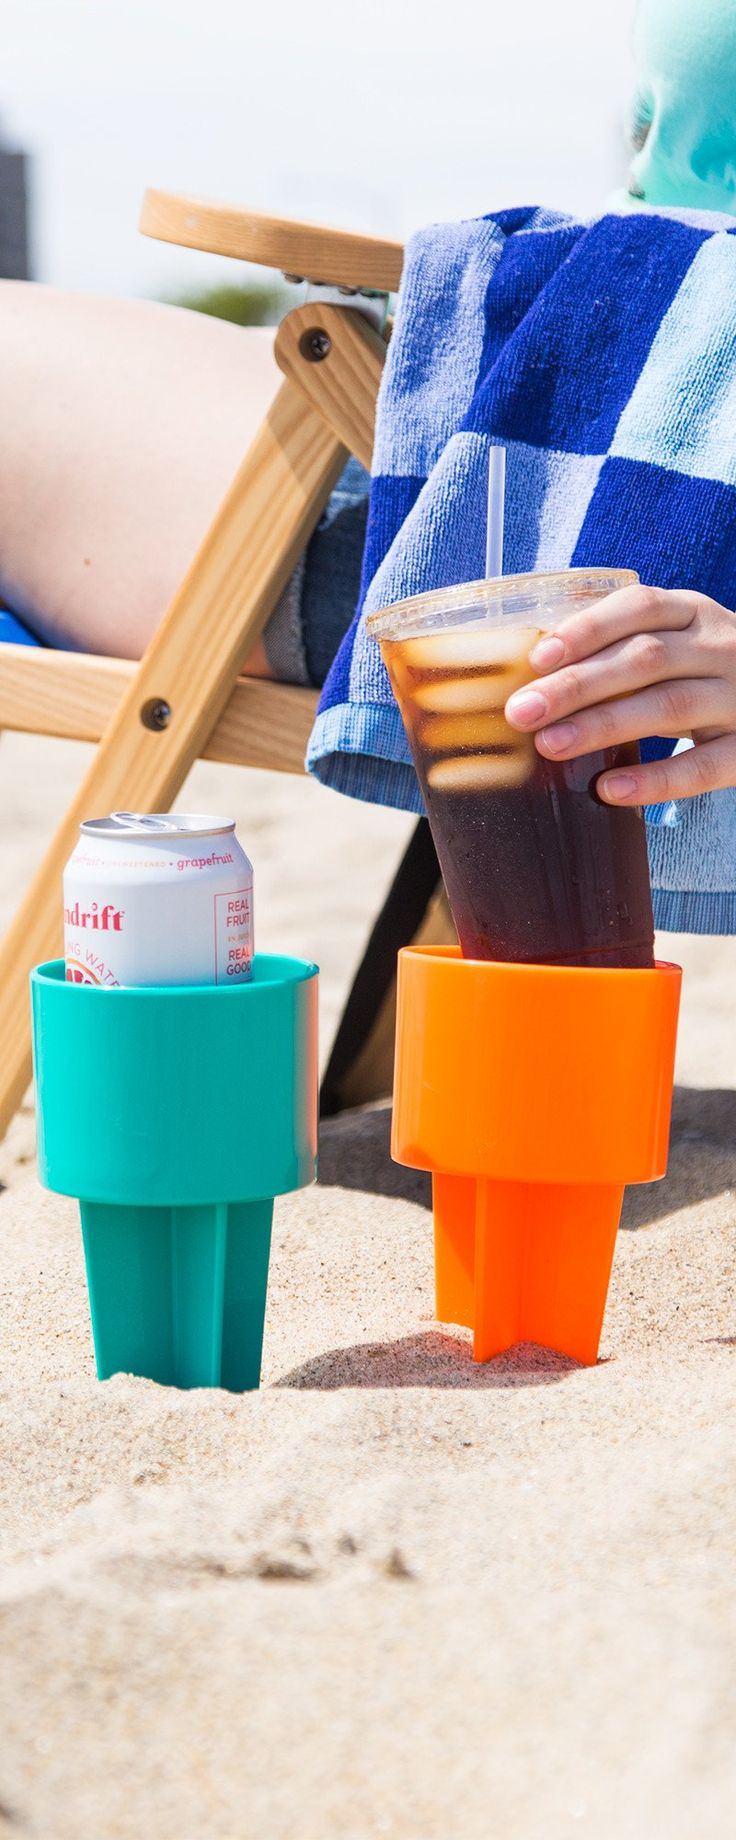 A spill-free, sand-free home for your drinks and essentials at the beach. This cup holder goes into the sand and keeps your drink elevated.